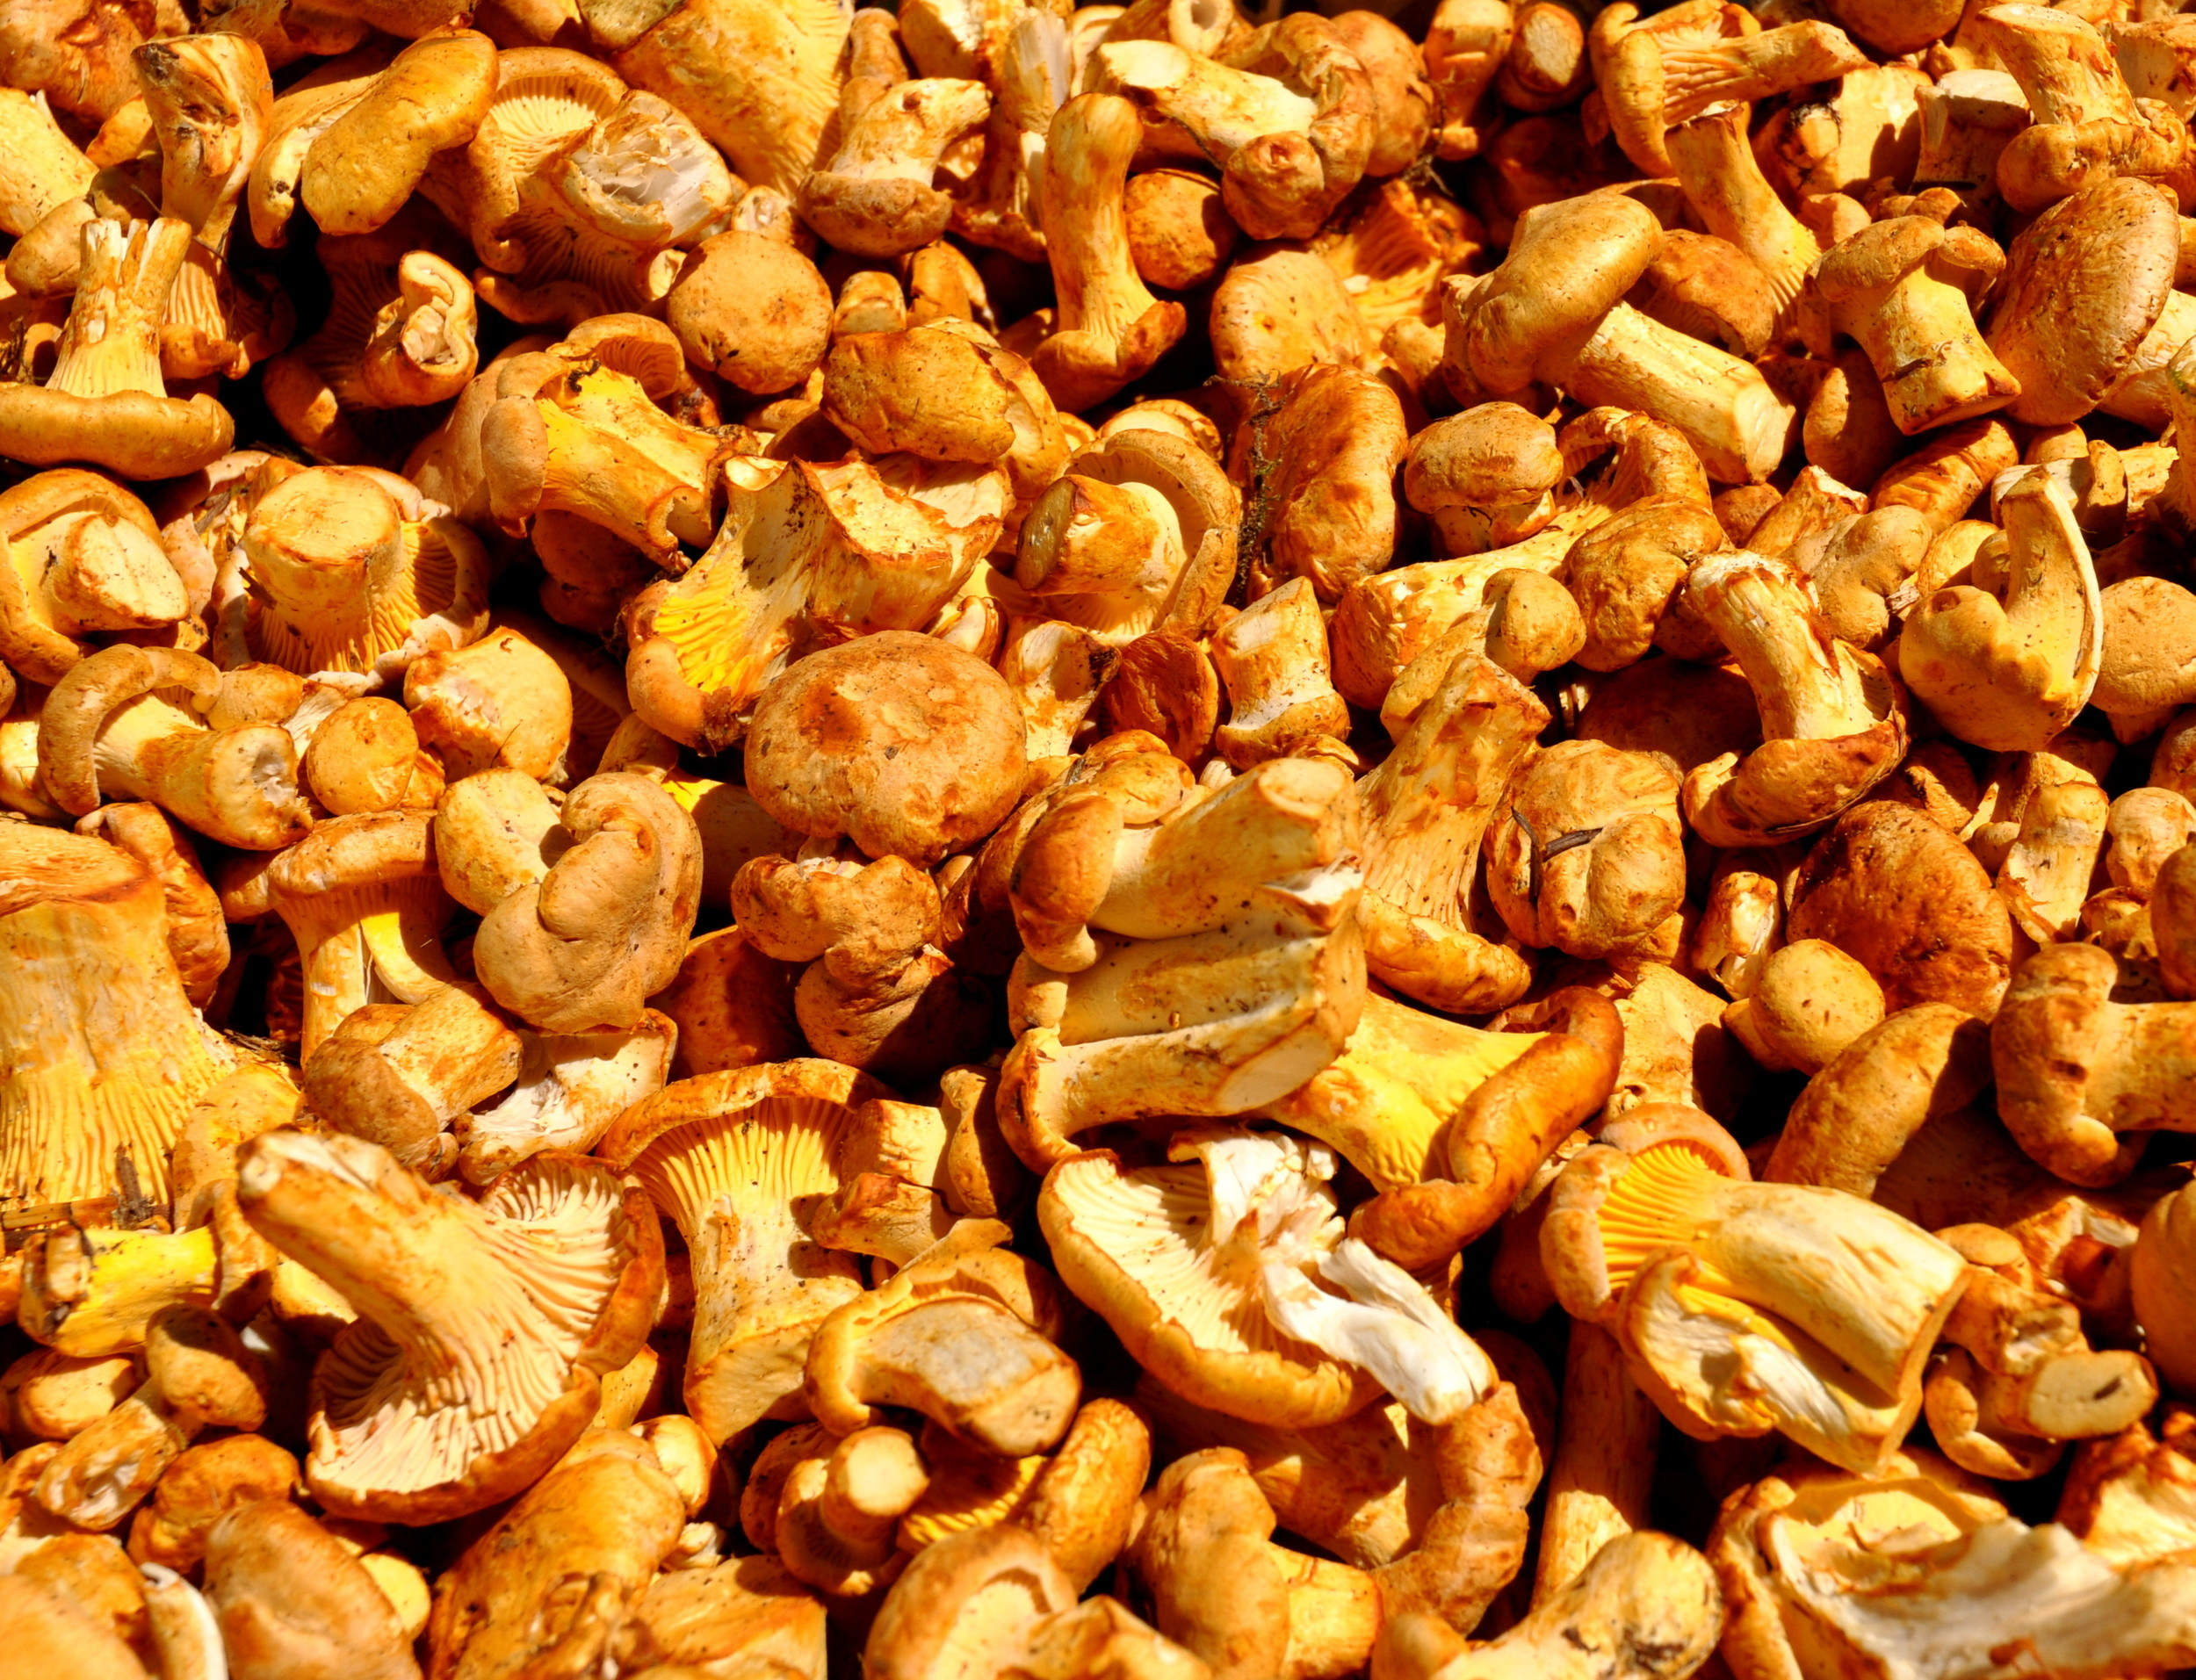 Summer chanterelle mushrooms from Foraged & Found Edibles. Photo copyright 2013 by Zachary D. Lyons.